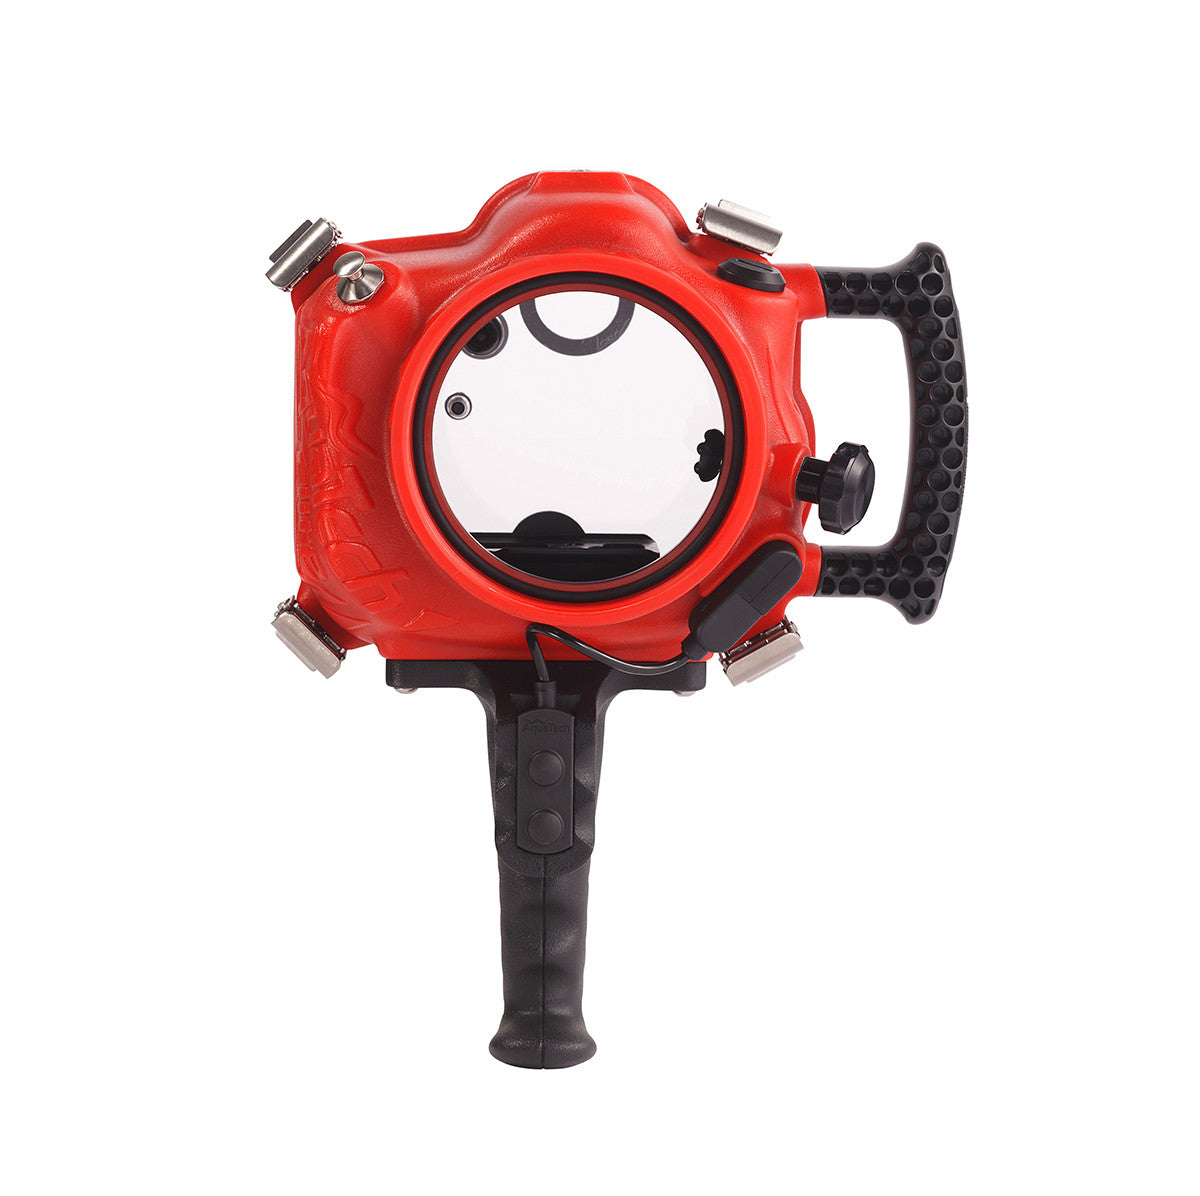 Elite 80D / 70D Water Housing with Pistol Grip front view